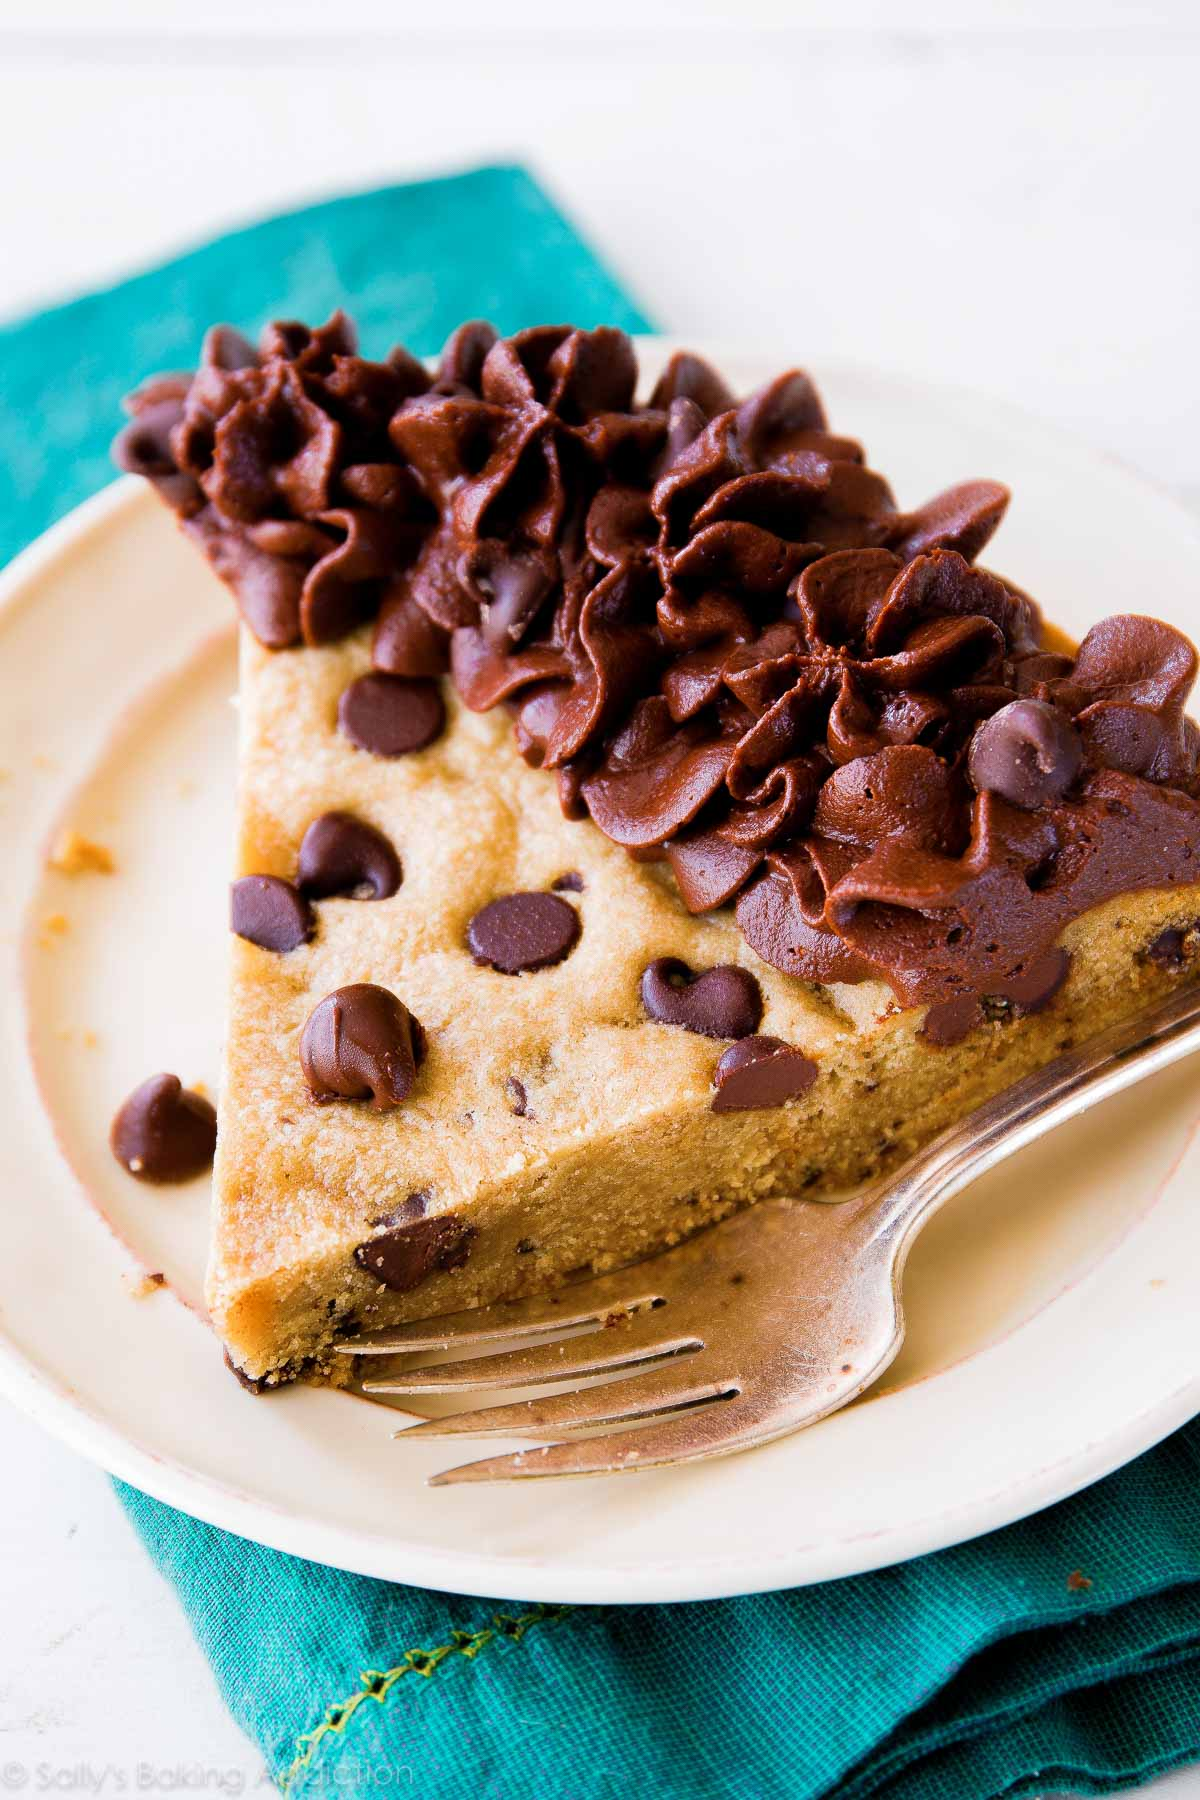 Chocolate Chip Cookie Cake with Milk Chocolate Frosting - the best way to eat a chocolate chip cookie! Recipe on sallysbakingaddiction.com